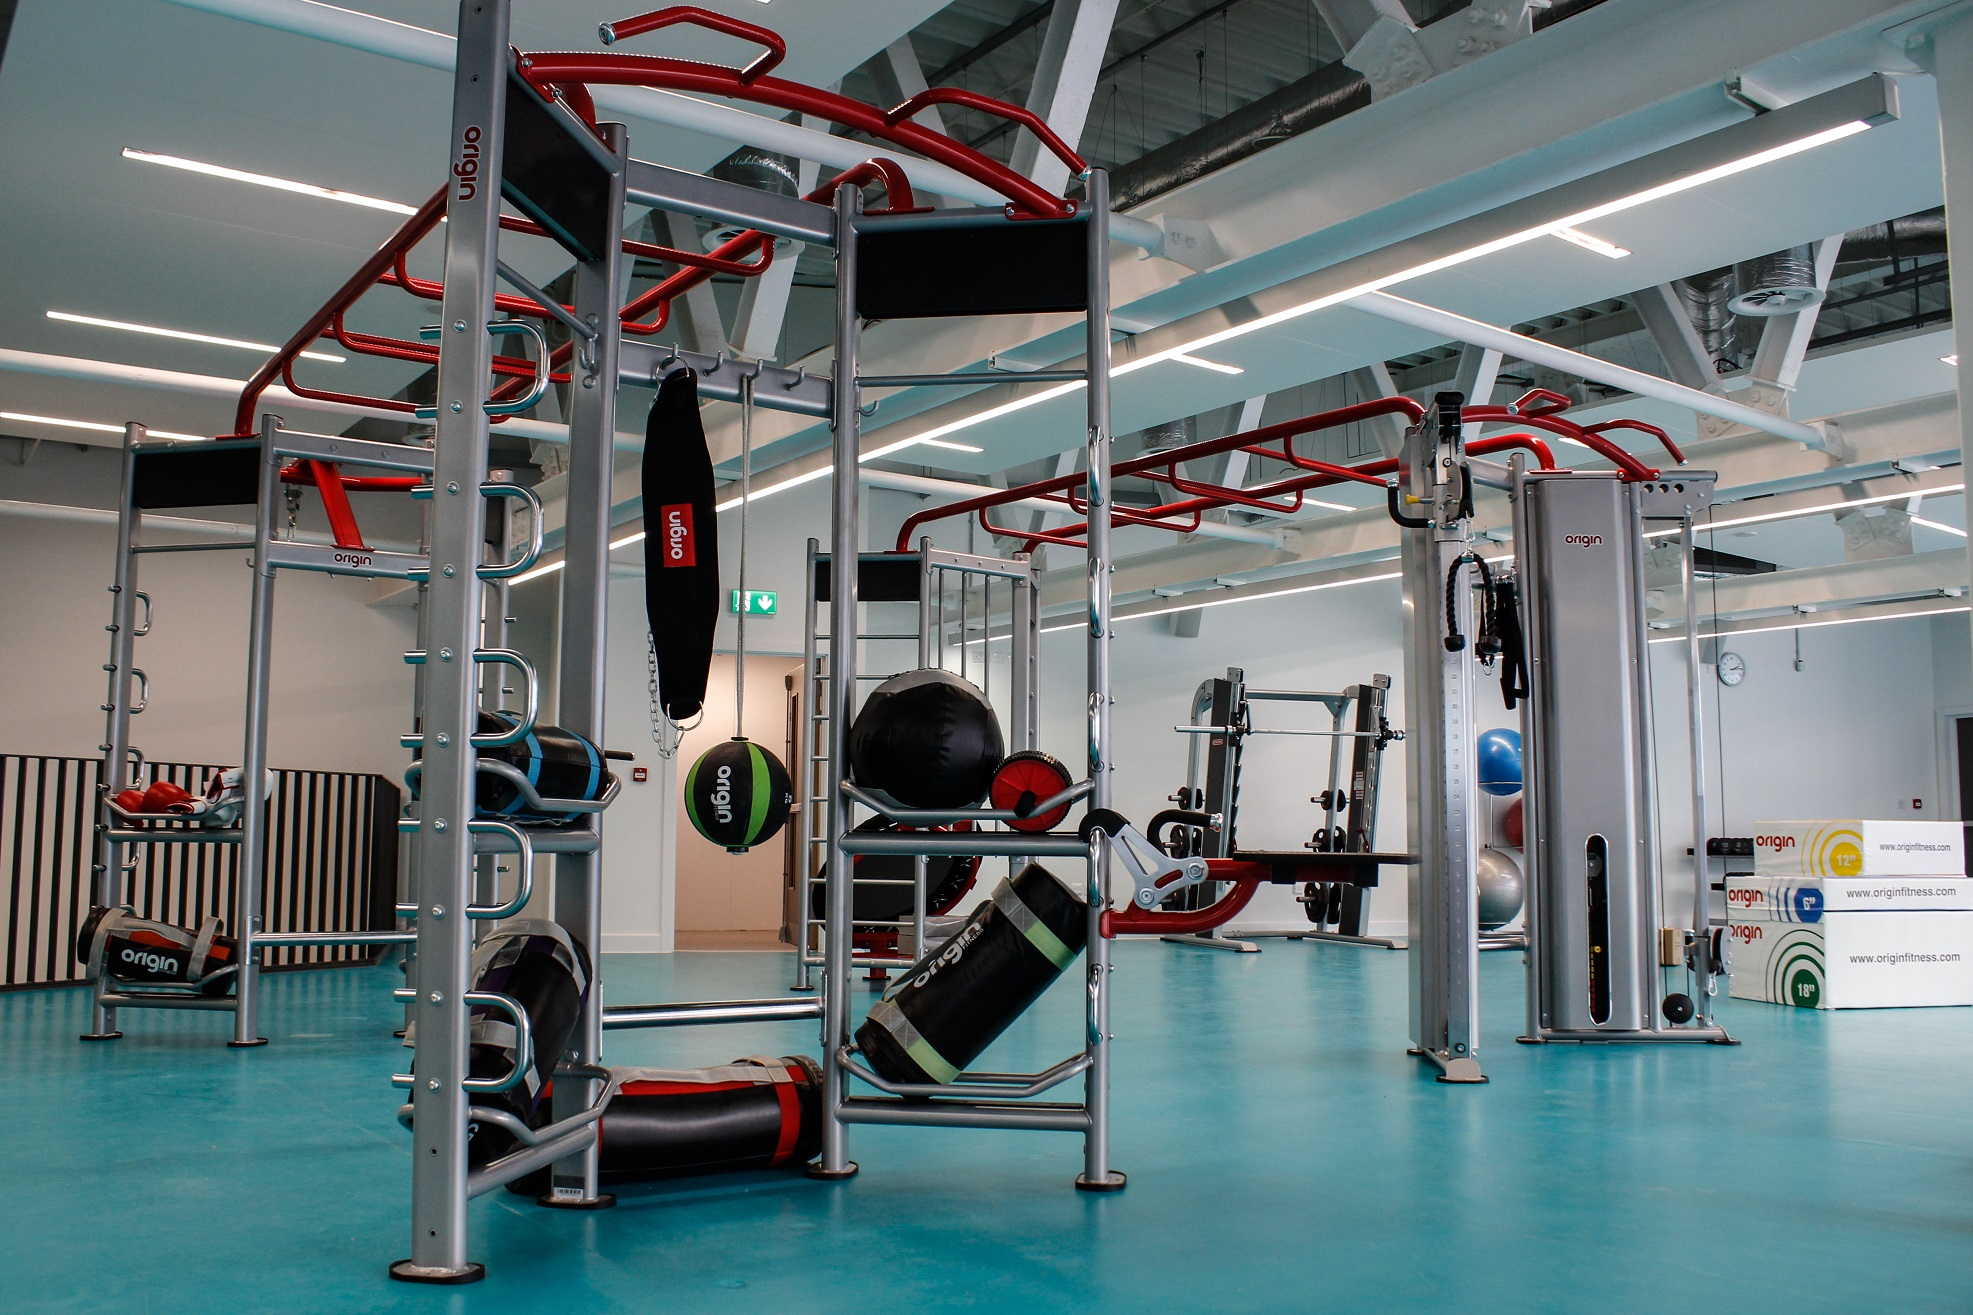 Gym equipment, weights and frames 10